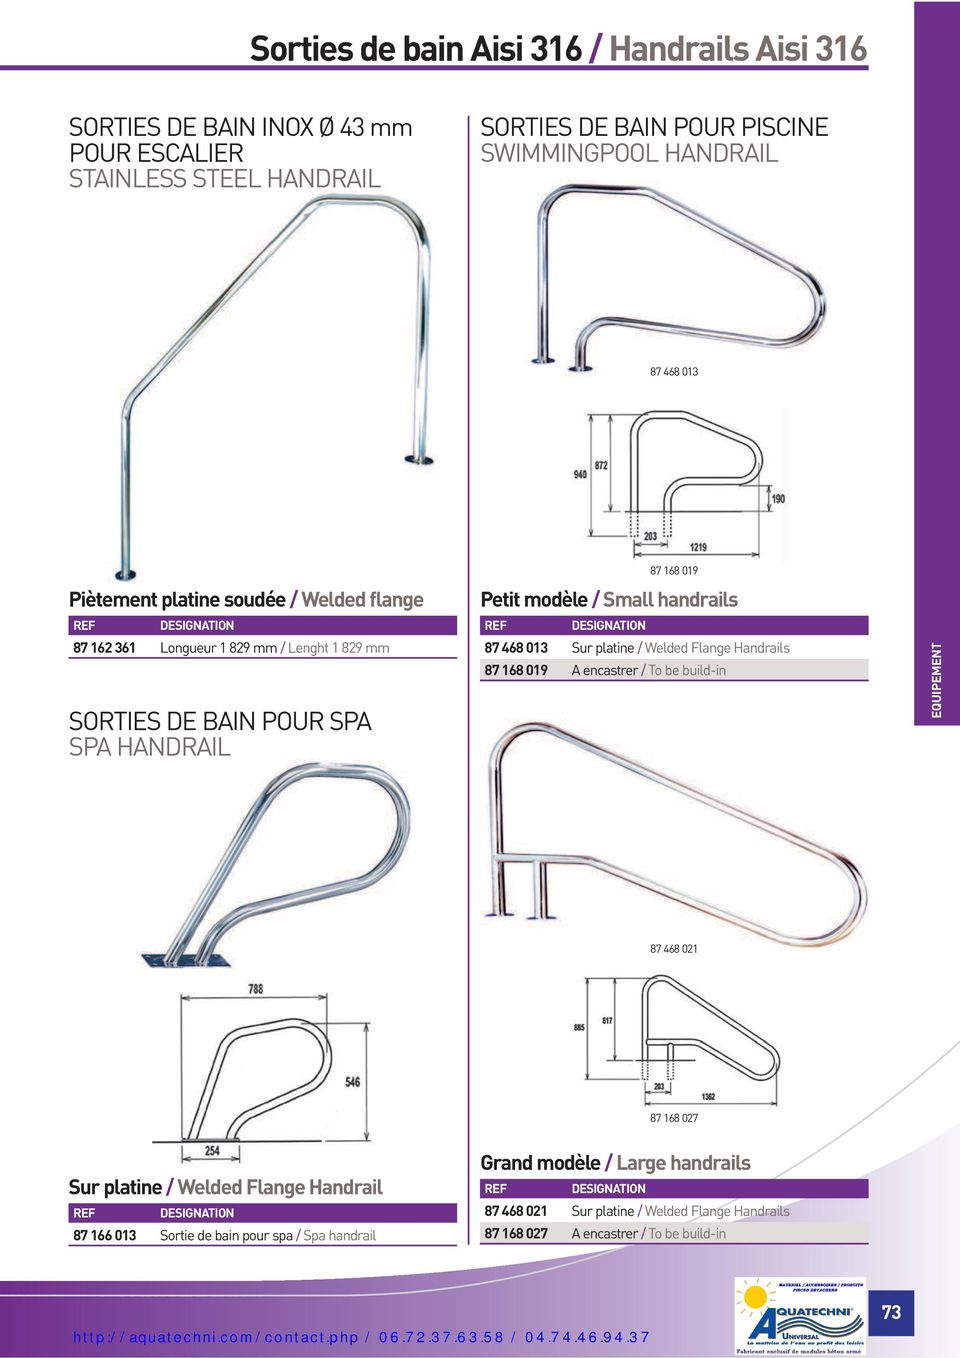 encastrer / To be build-in Piètement platine soudée / Welded flange SORTIES DE BAIN POUR SPA SPA HANDRAIL 87 468 021 87 168 027 Grand modèle / Large handrails Sur